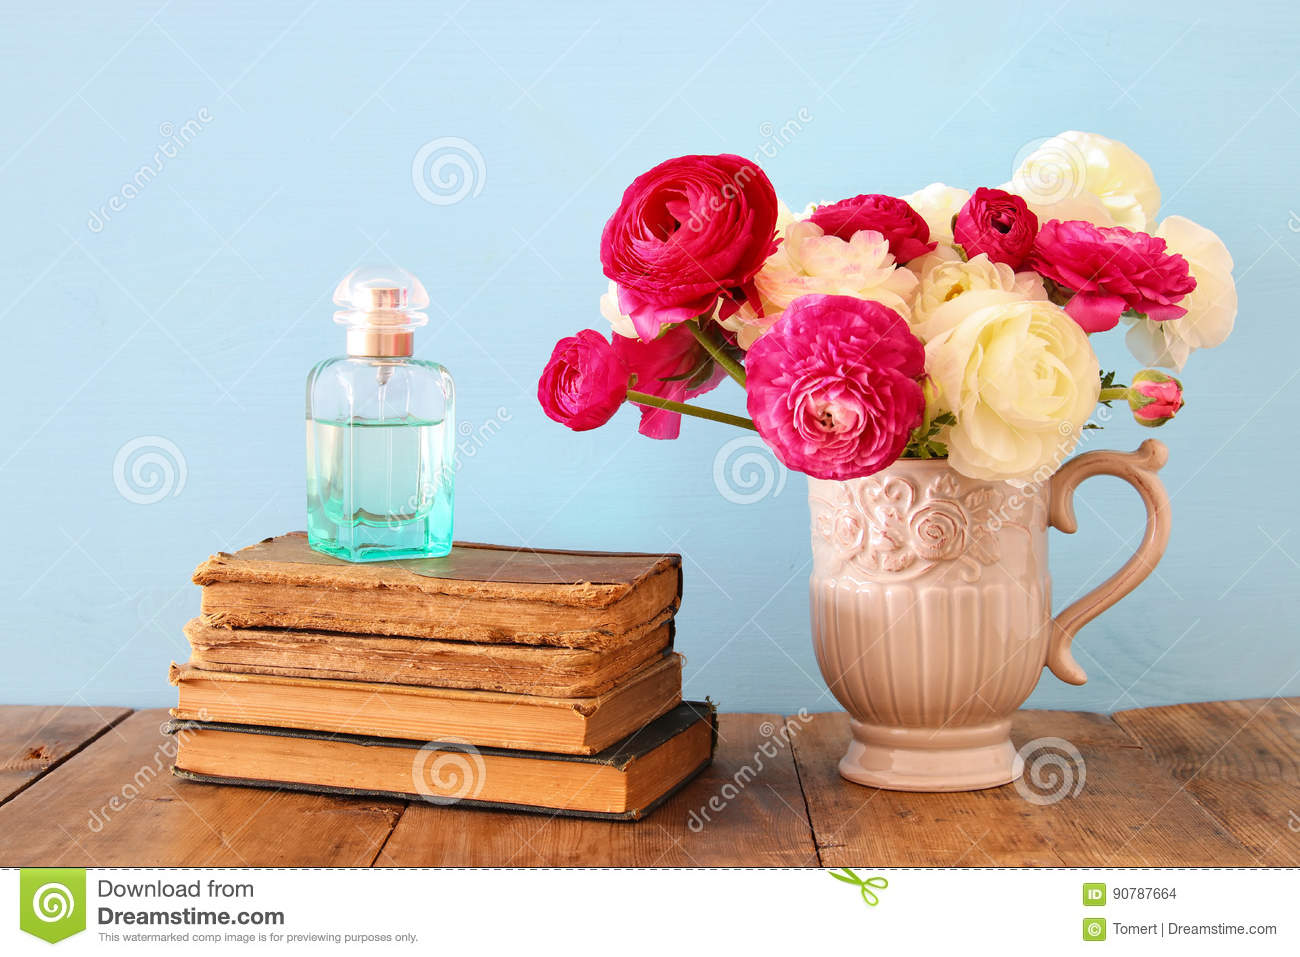 Spring flowers in the vase next to old books and perfume bottle spring flowers in the vase next to old books and perfume bottle mightylinksfo